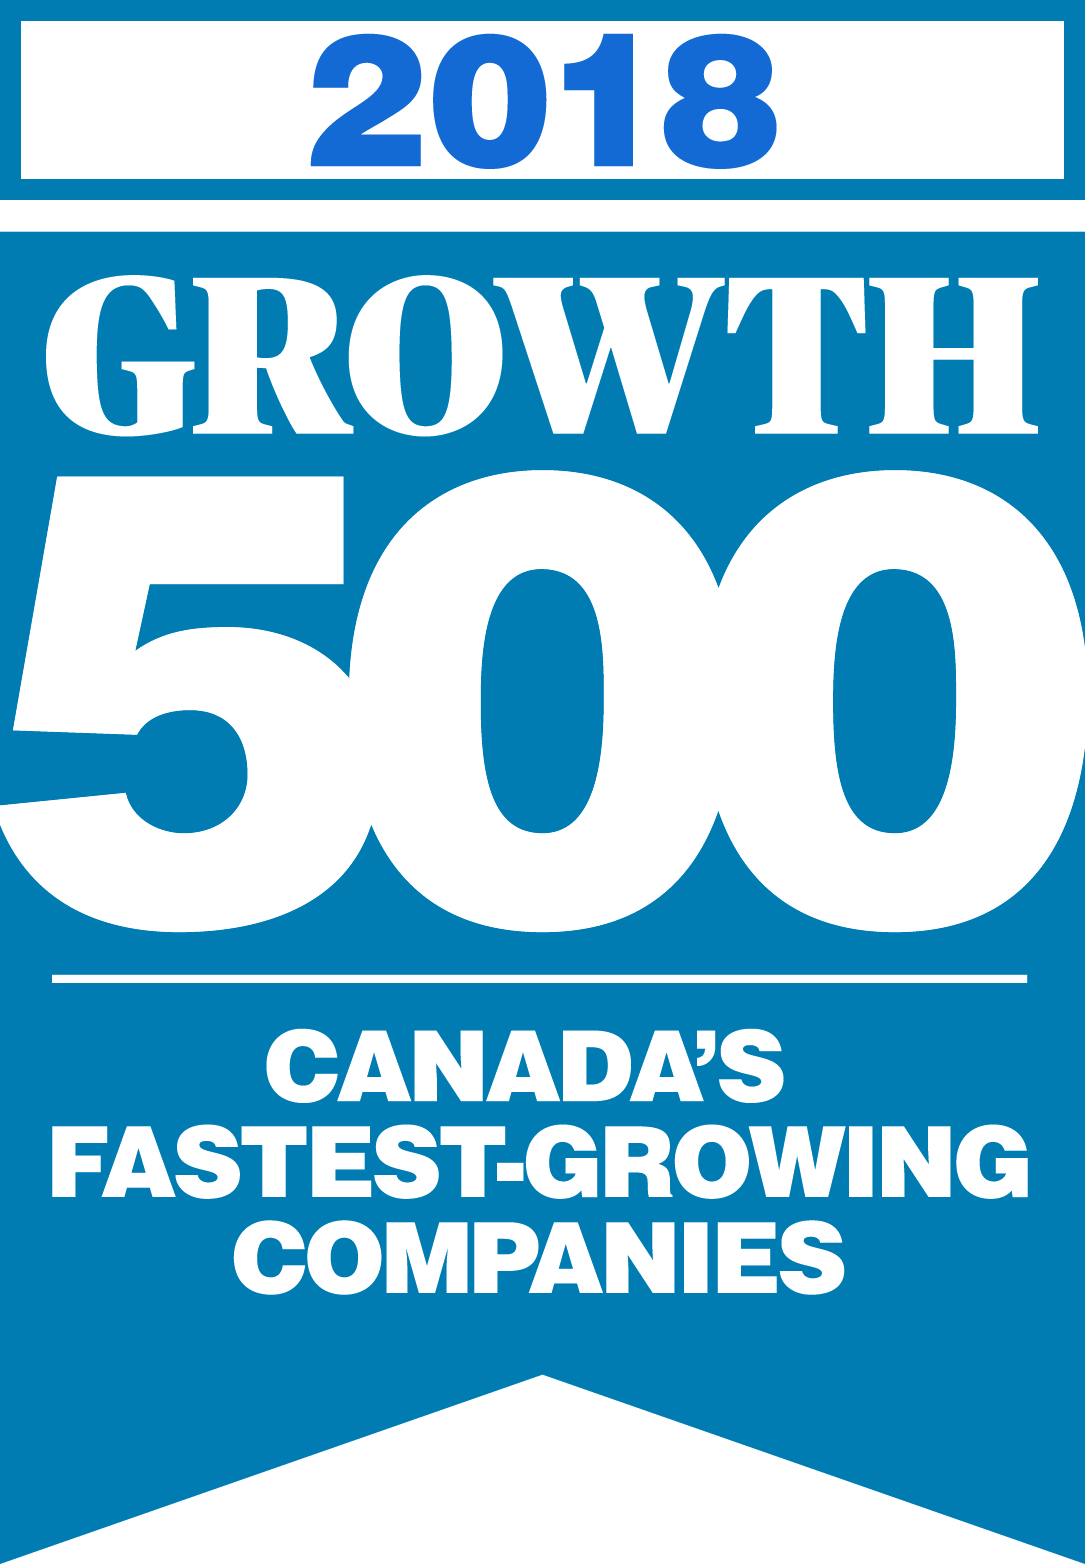 Growth 500 Logo 2018 Blue